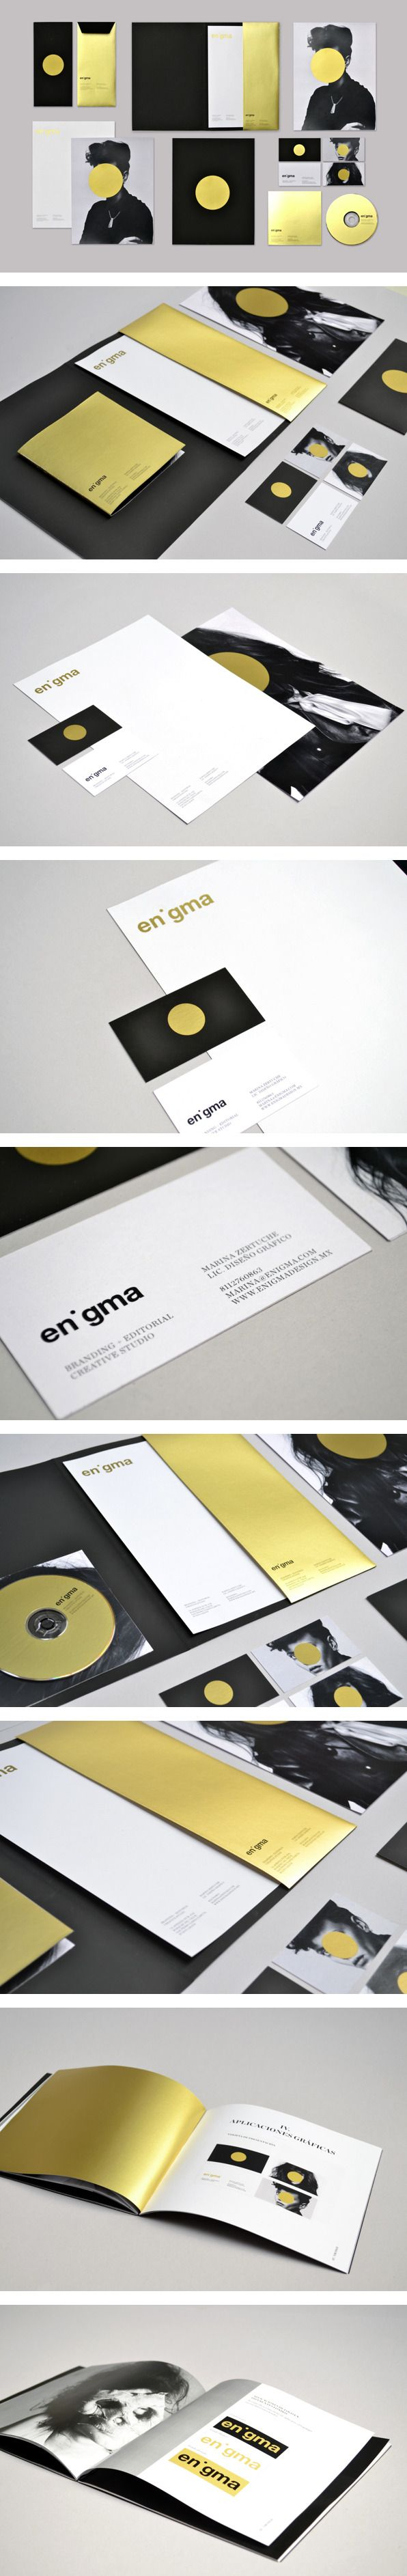 Enigma Personal Identity by Marina Zertuche - Loving the circle's and limited colour.